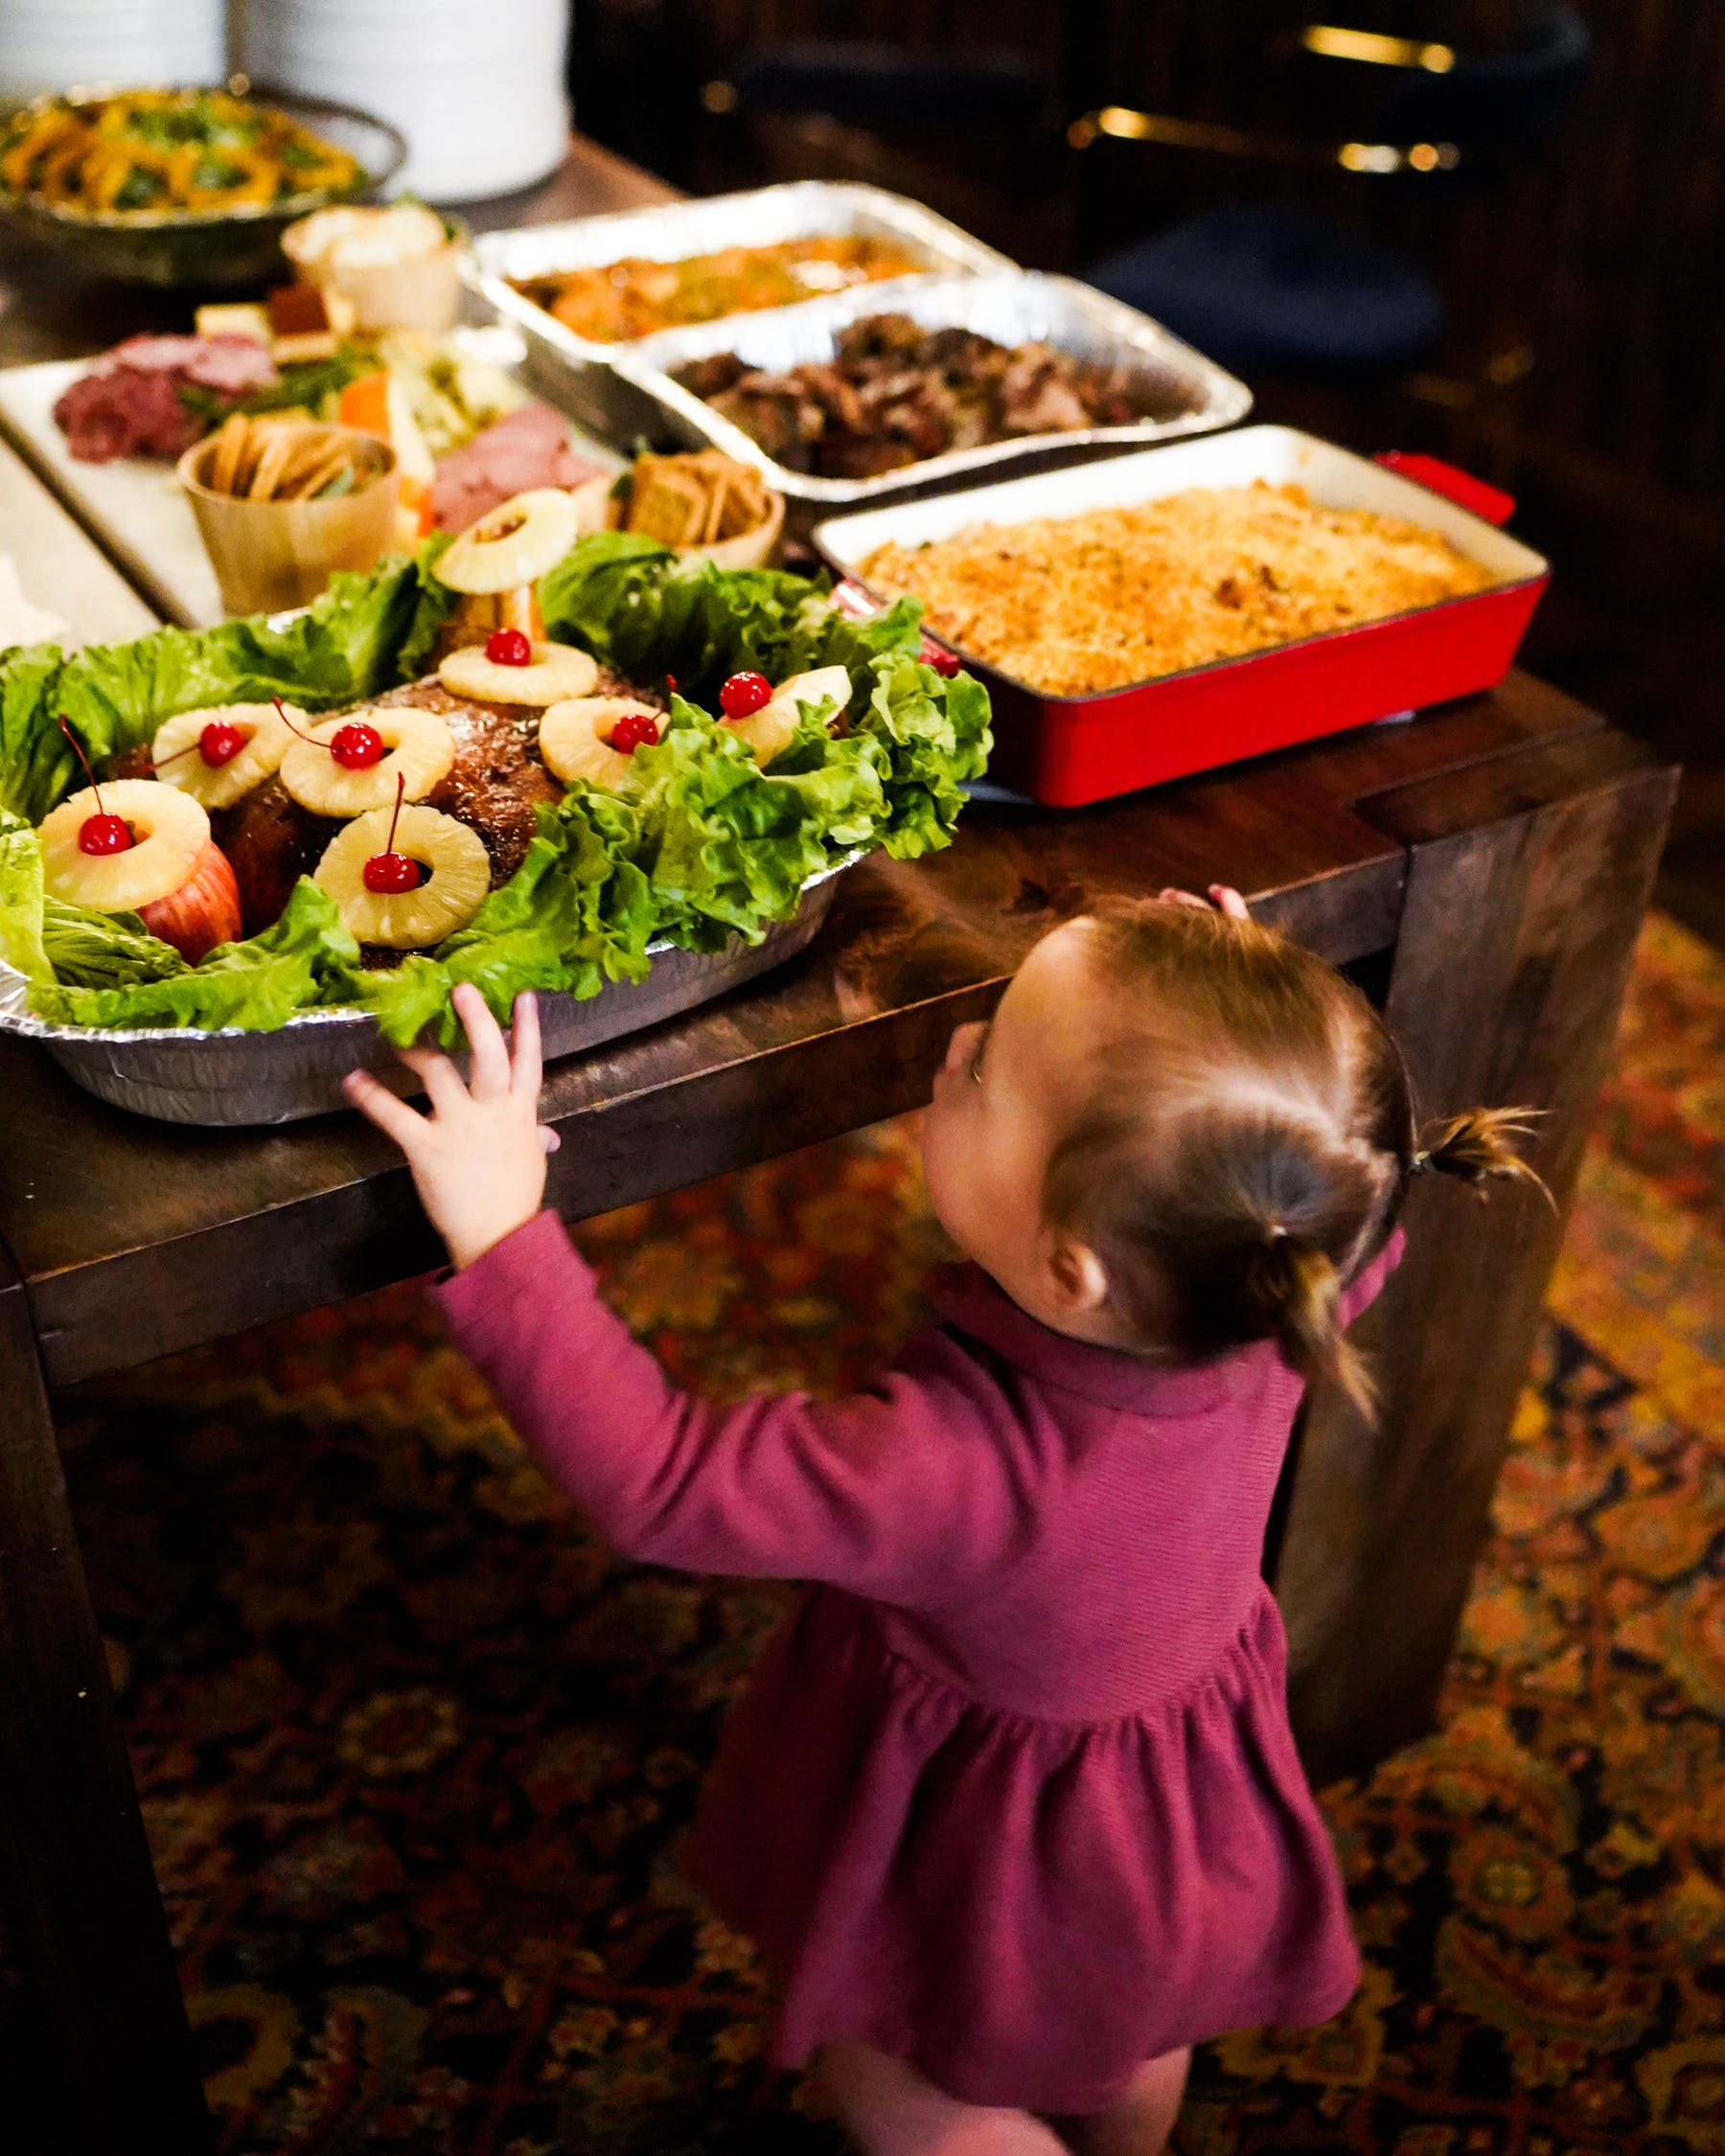 a little girl standing in front of a plate of food